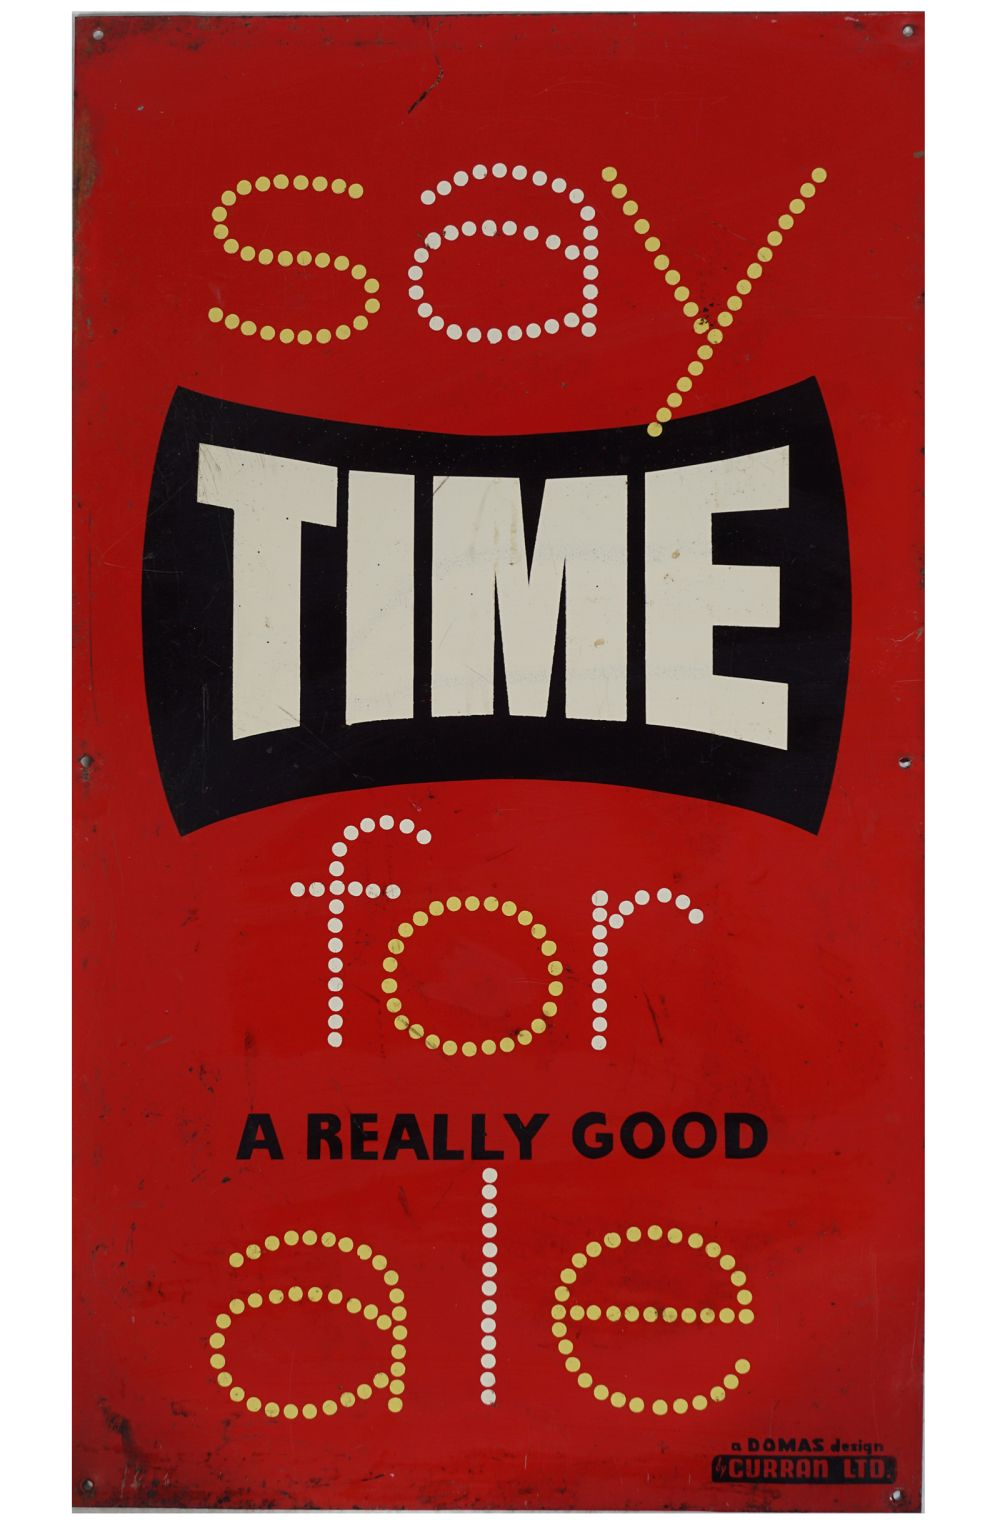 SAY TIME FOR A REALLY GOOD ALE ORIGINAL SIGN